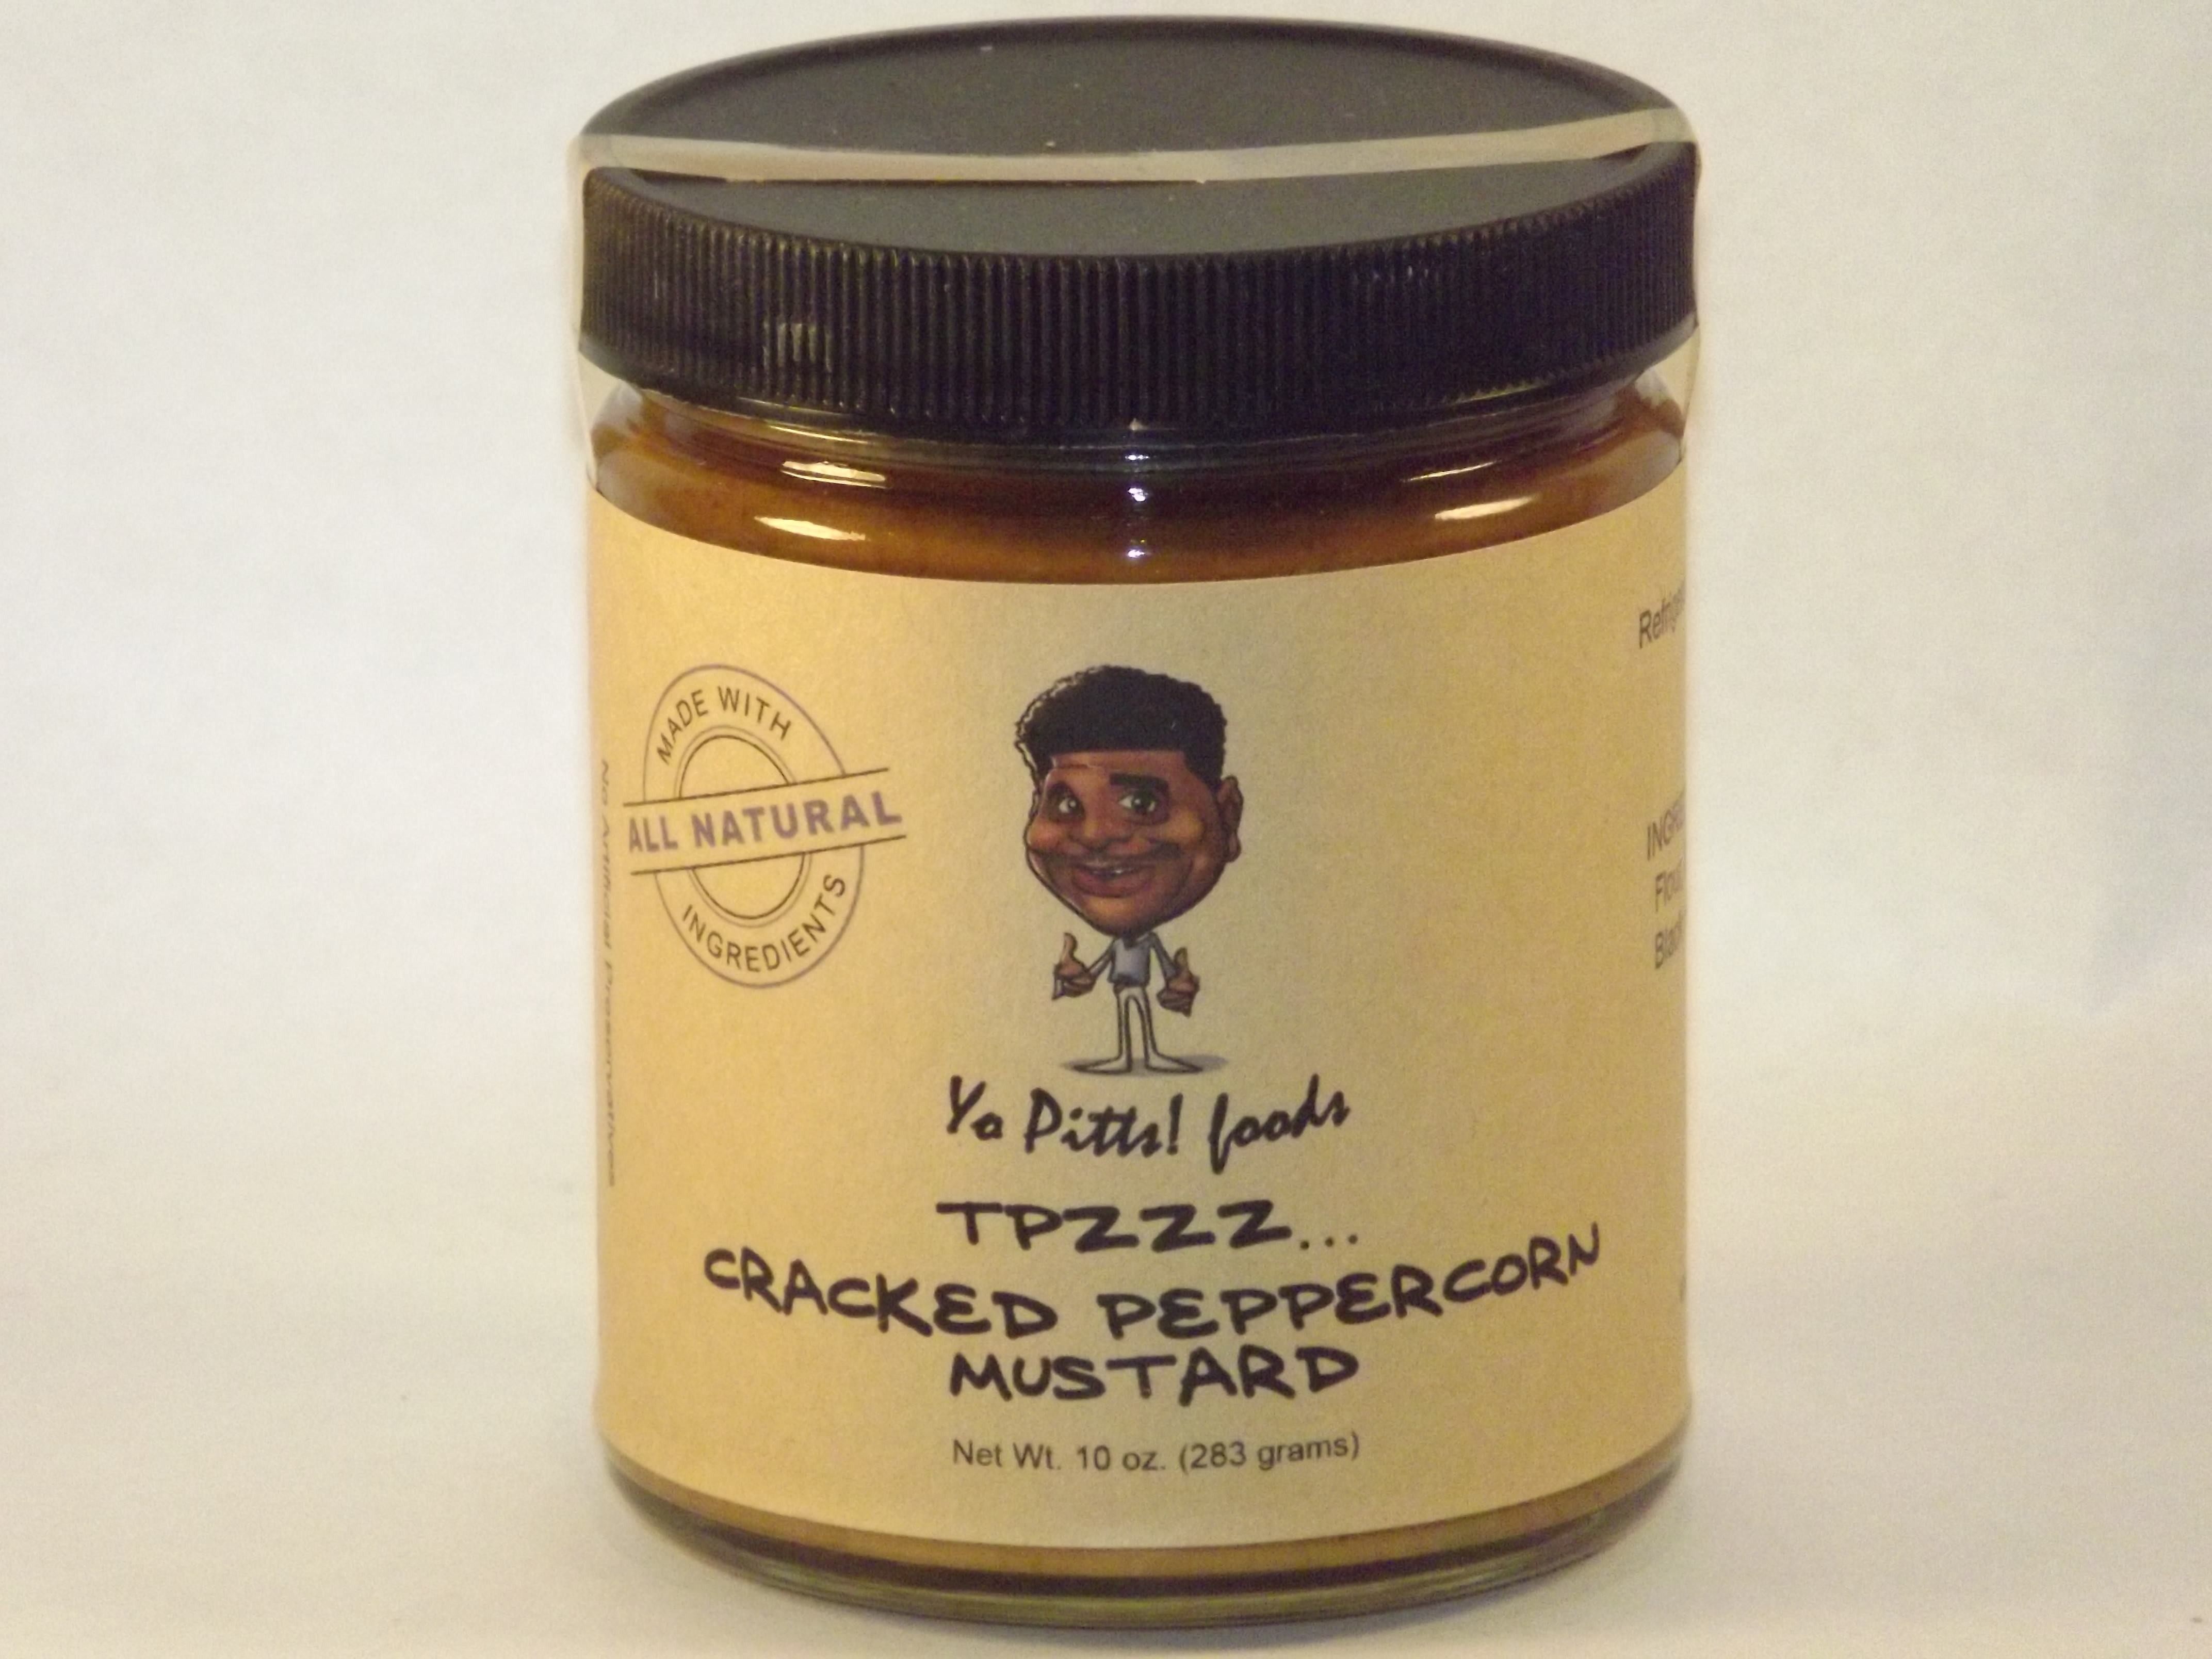 Yo Pitts! Foods Cracked Peppercorn Mustard